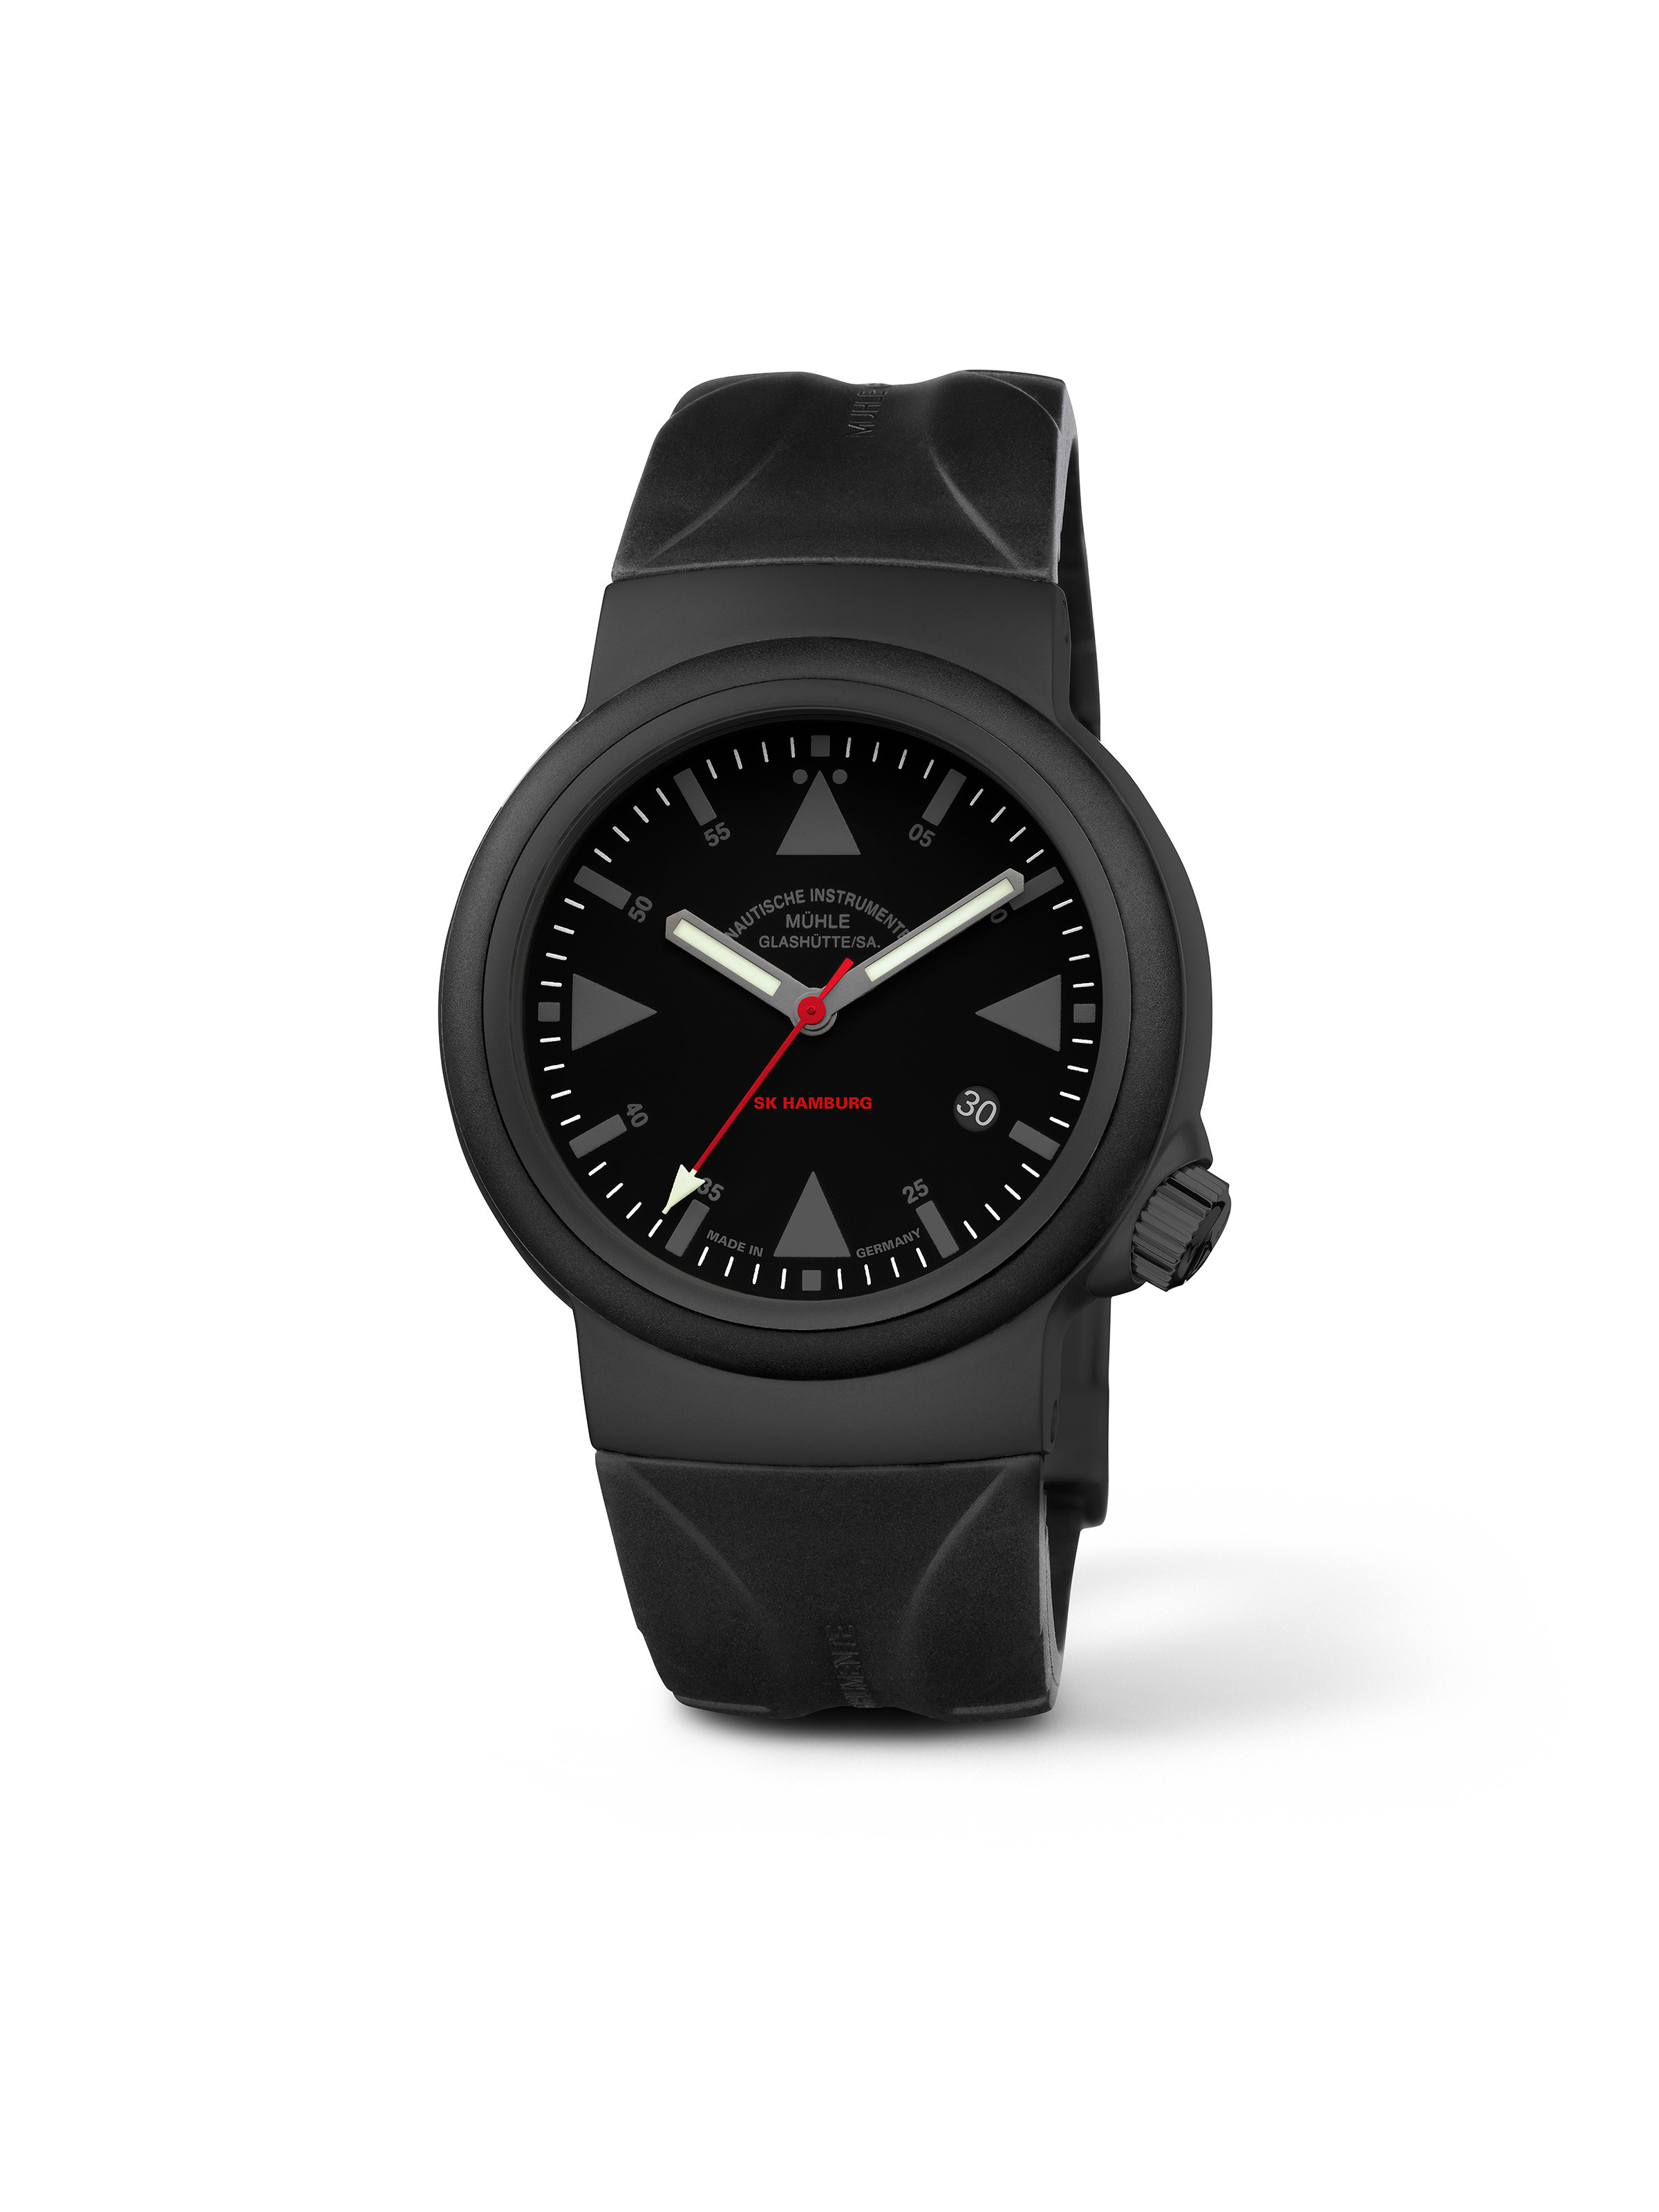 S.A.R. Rescue-Timer Sonderedition DGzRS